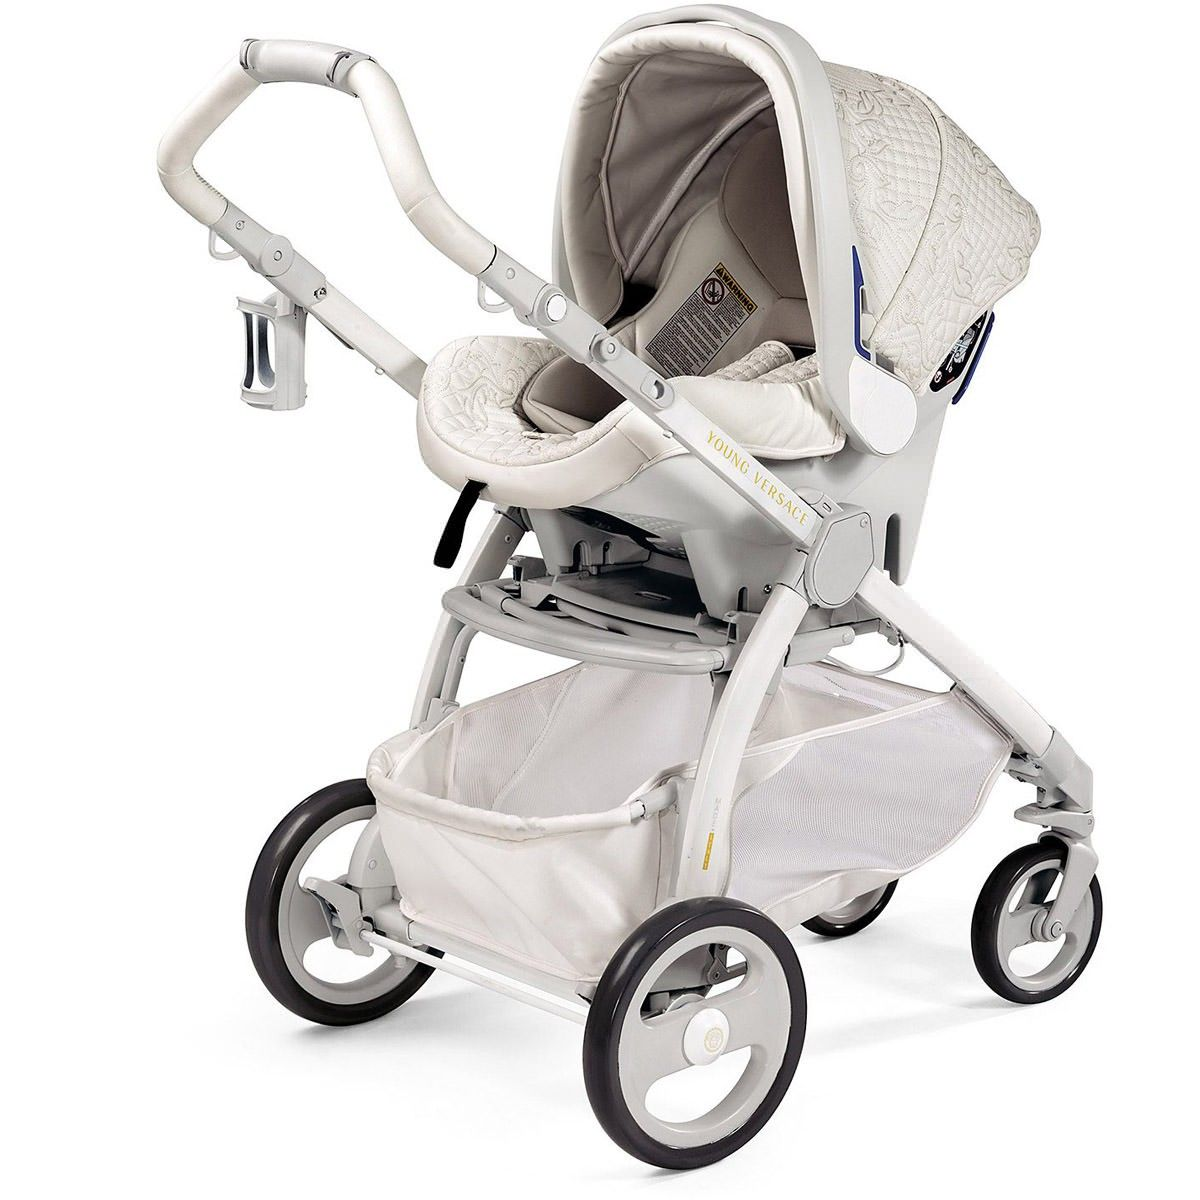 Young Versace Baby White Stroller And Travel Set Young Versace Baby White Stroller And Travel Set Baby Girl